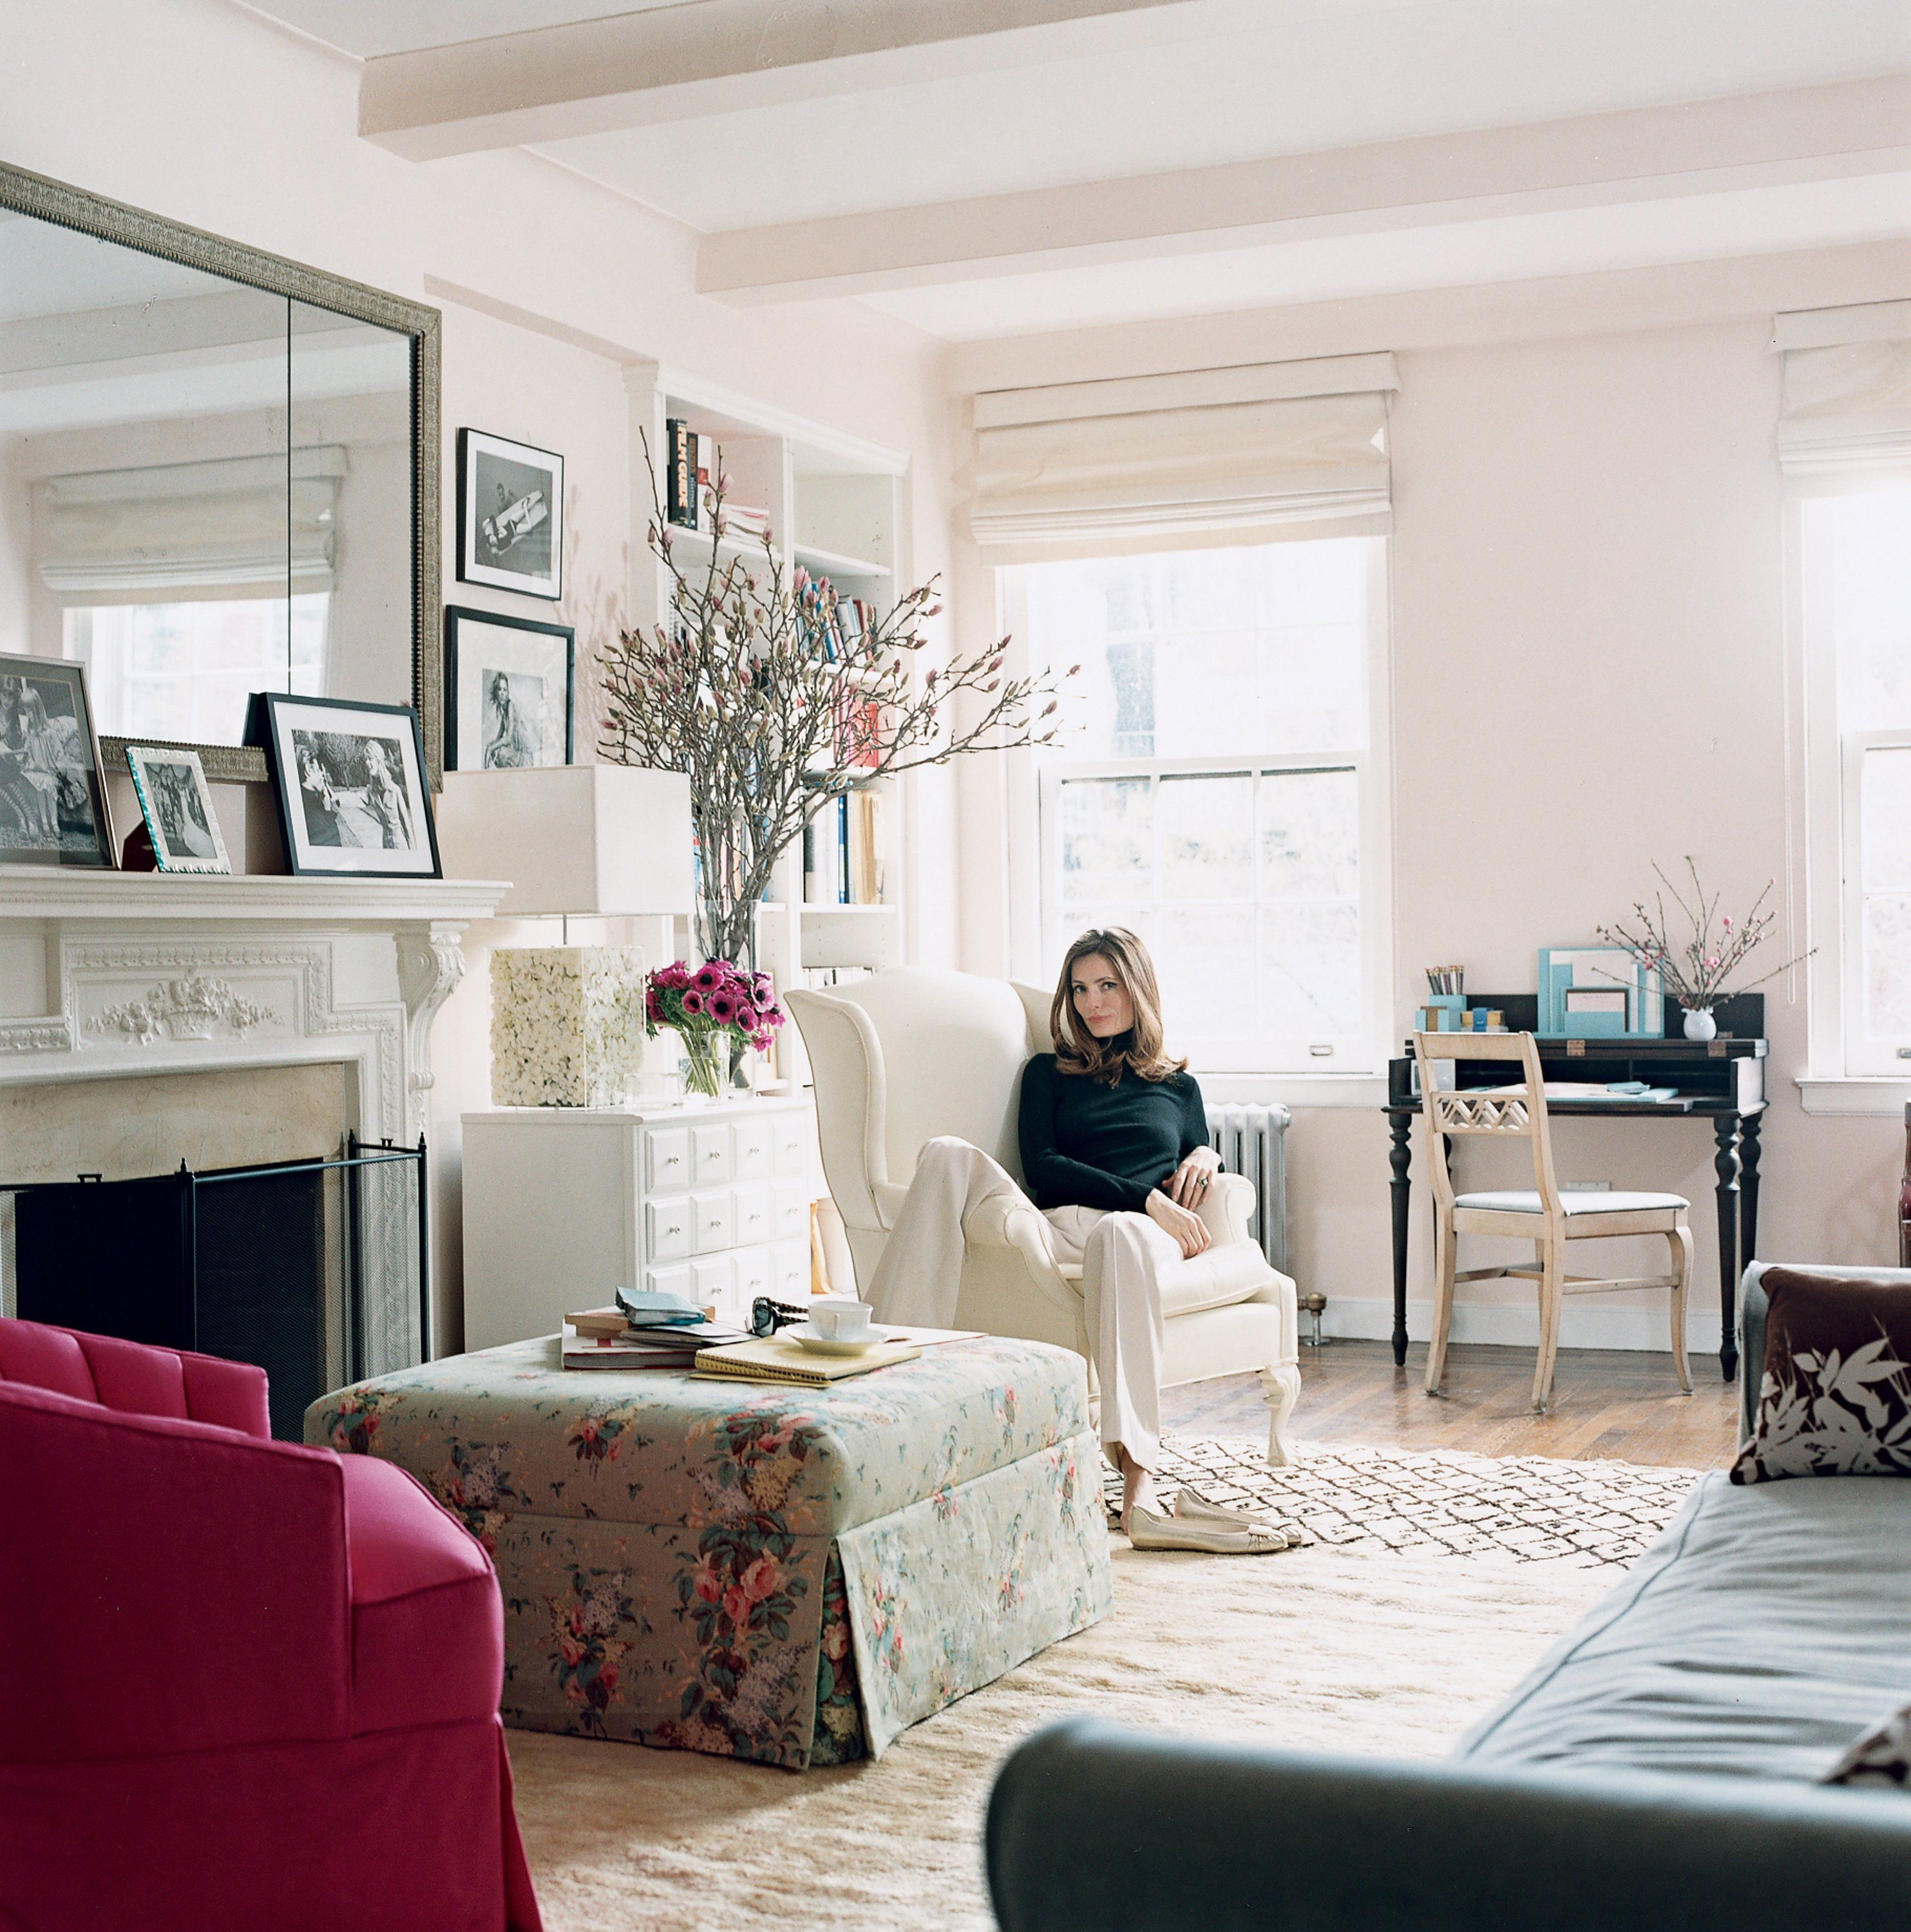 Best Living Rooms in Vogue—Photos | Plum sykes, Manhattan and Apartments